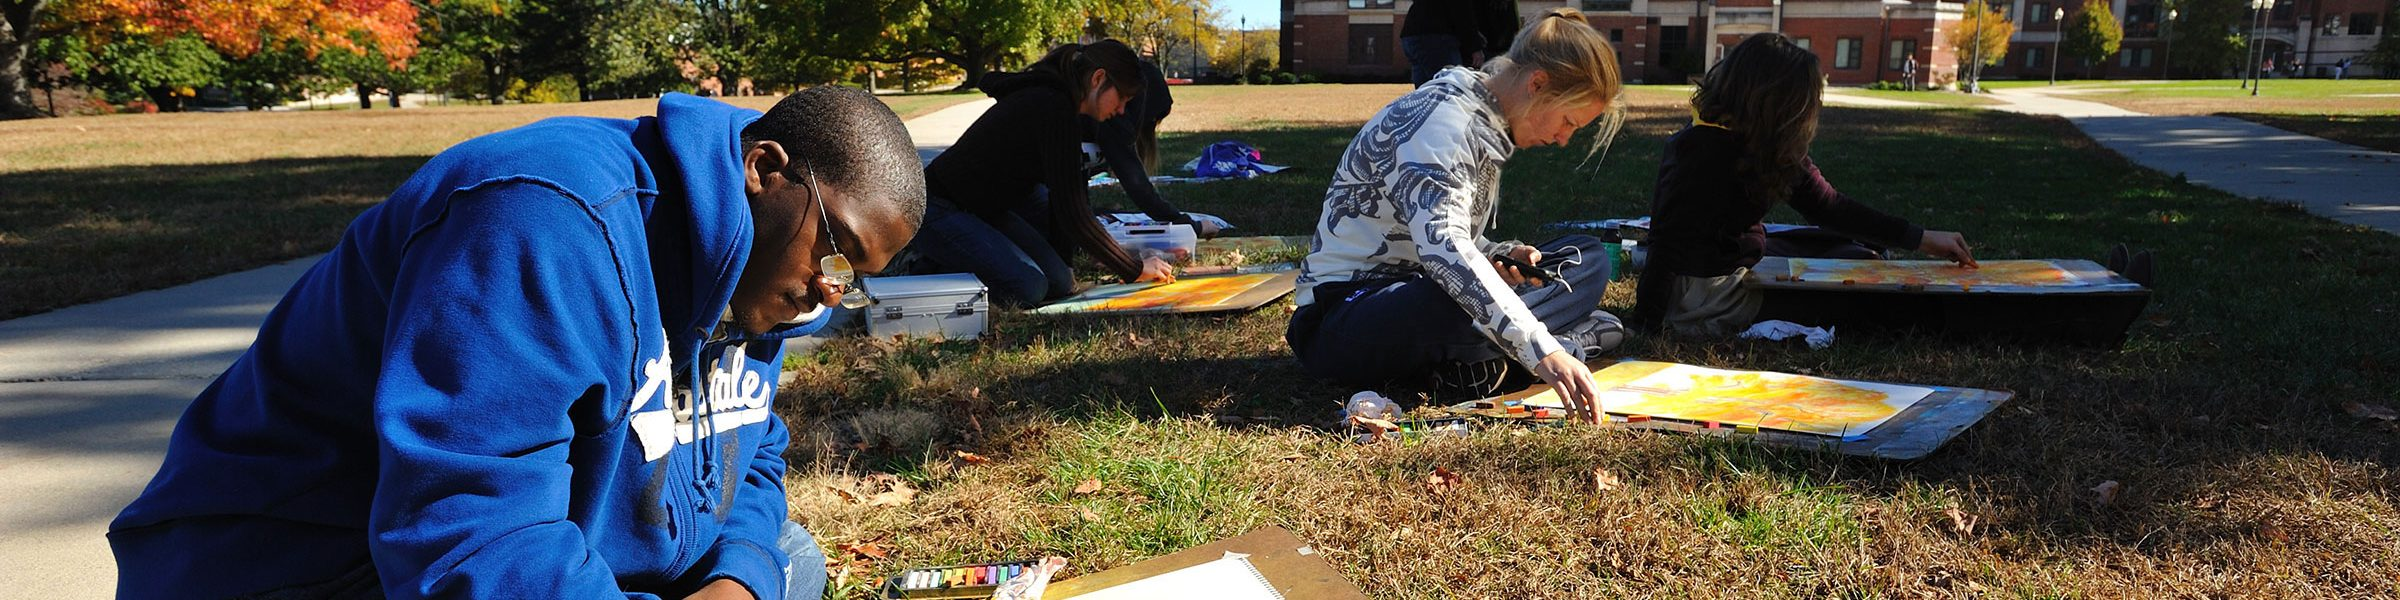 Four UConn Art & Art History students sitting and working with pastels in the south quad lawn during the Fall